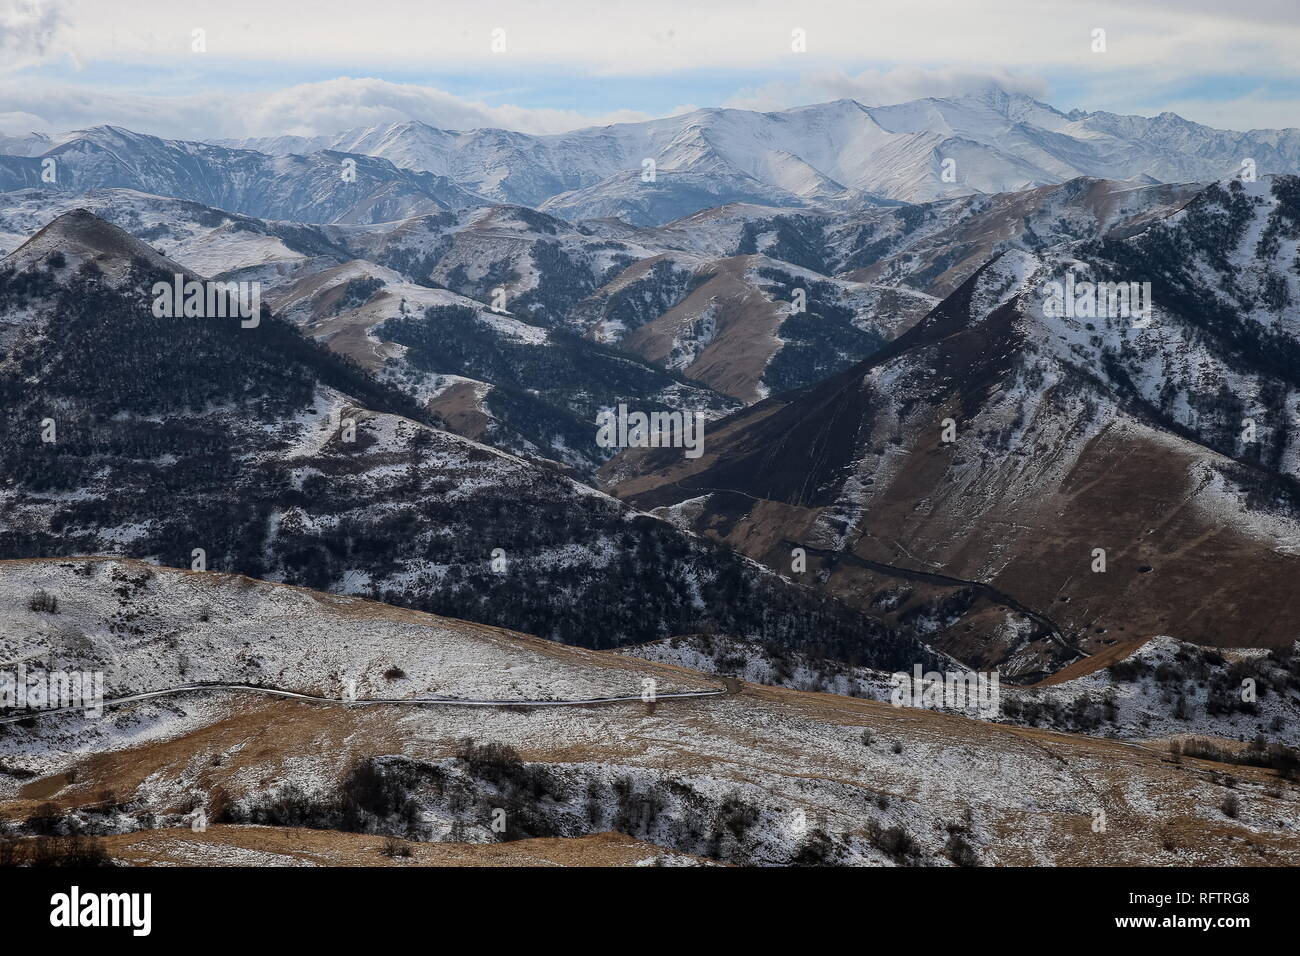 Grozny, Russia. 26th Jan, 2019. CHECHNYA, RUSSIA - JANUARY 26, 2019: A mountain view of the Galain-Chazh District, southwestern Chechnya. It used to exist as an administrative division of the former Chechen-Ingush Autonomous SSR, was dissolved after the 1944 deporation of the local peoples and re-established by Ramzan Kadyrov, Head of the Chechen Republic, in 2012. Yelena Afonina/TASS Credit: ITAR-TASS News Agency/Alamy Live News - Stock Image